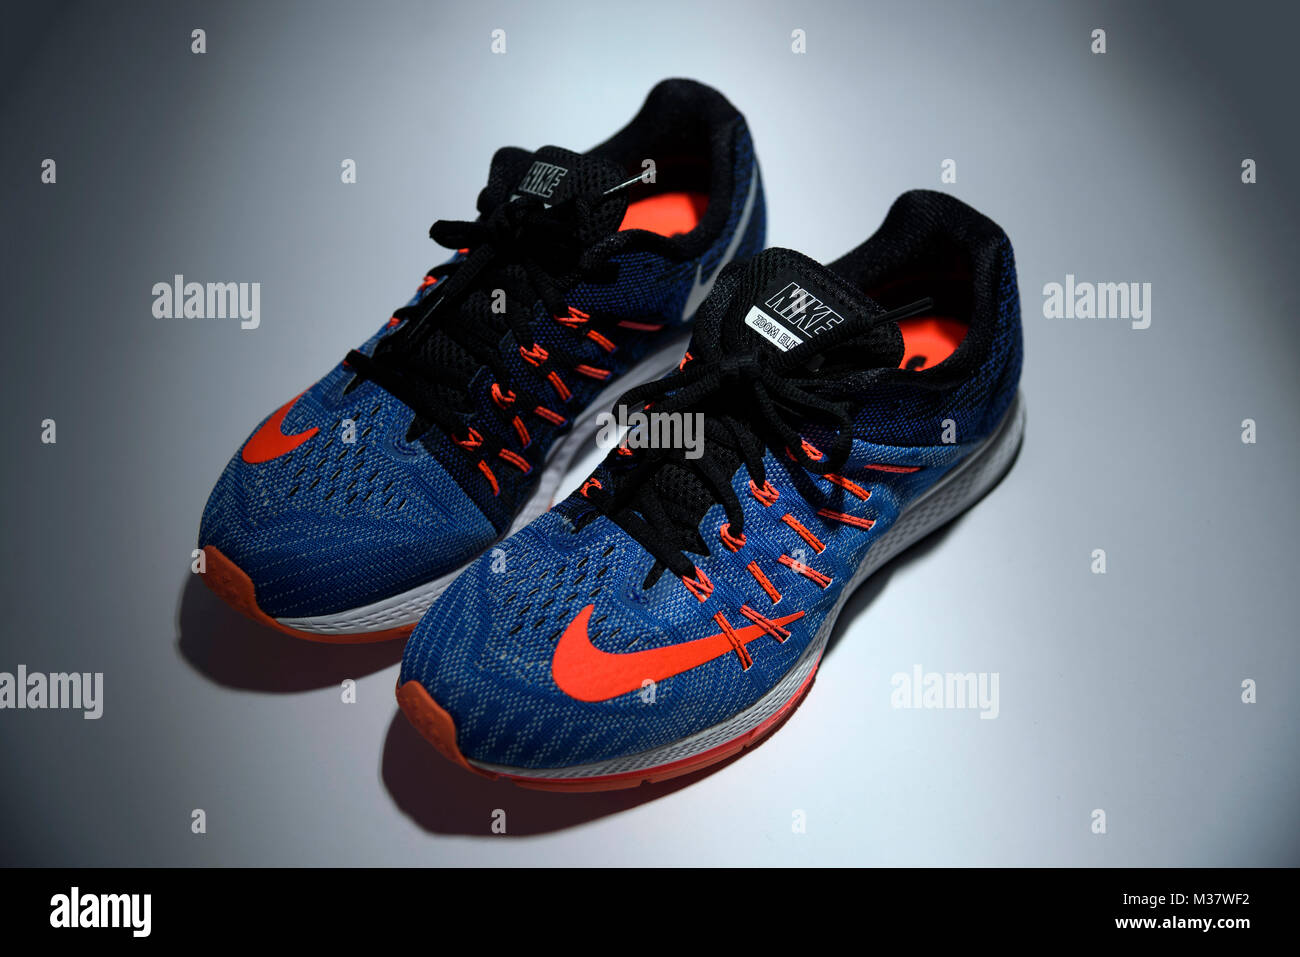 cheap for discount b45ee 3ae35 Orange Shoes Stock Photos & Orange Shoes Stock Images - Alamy